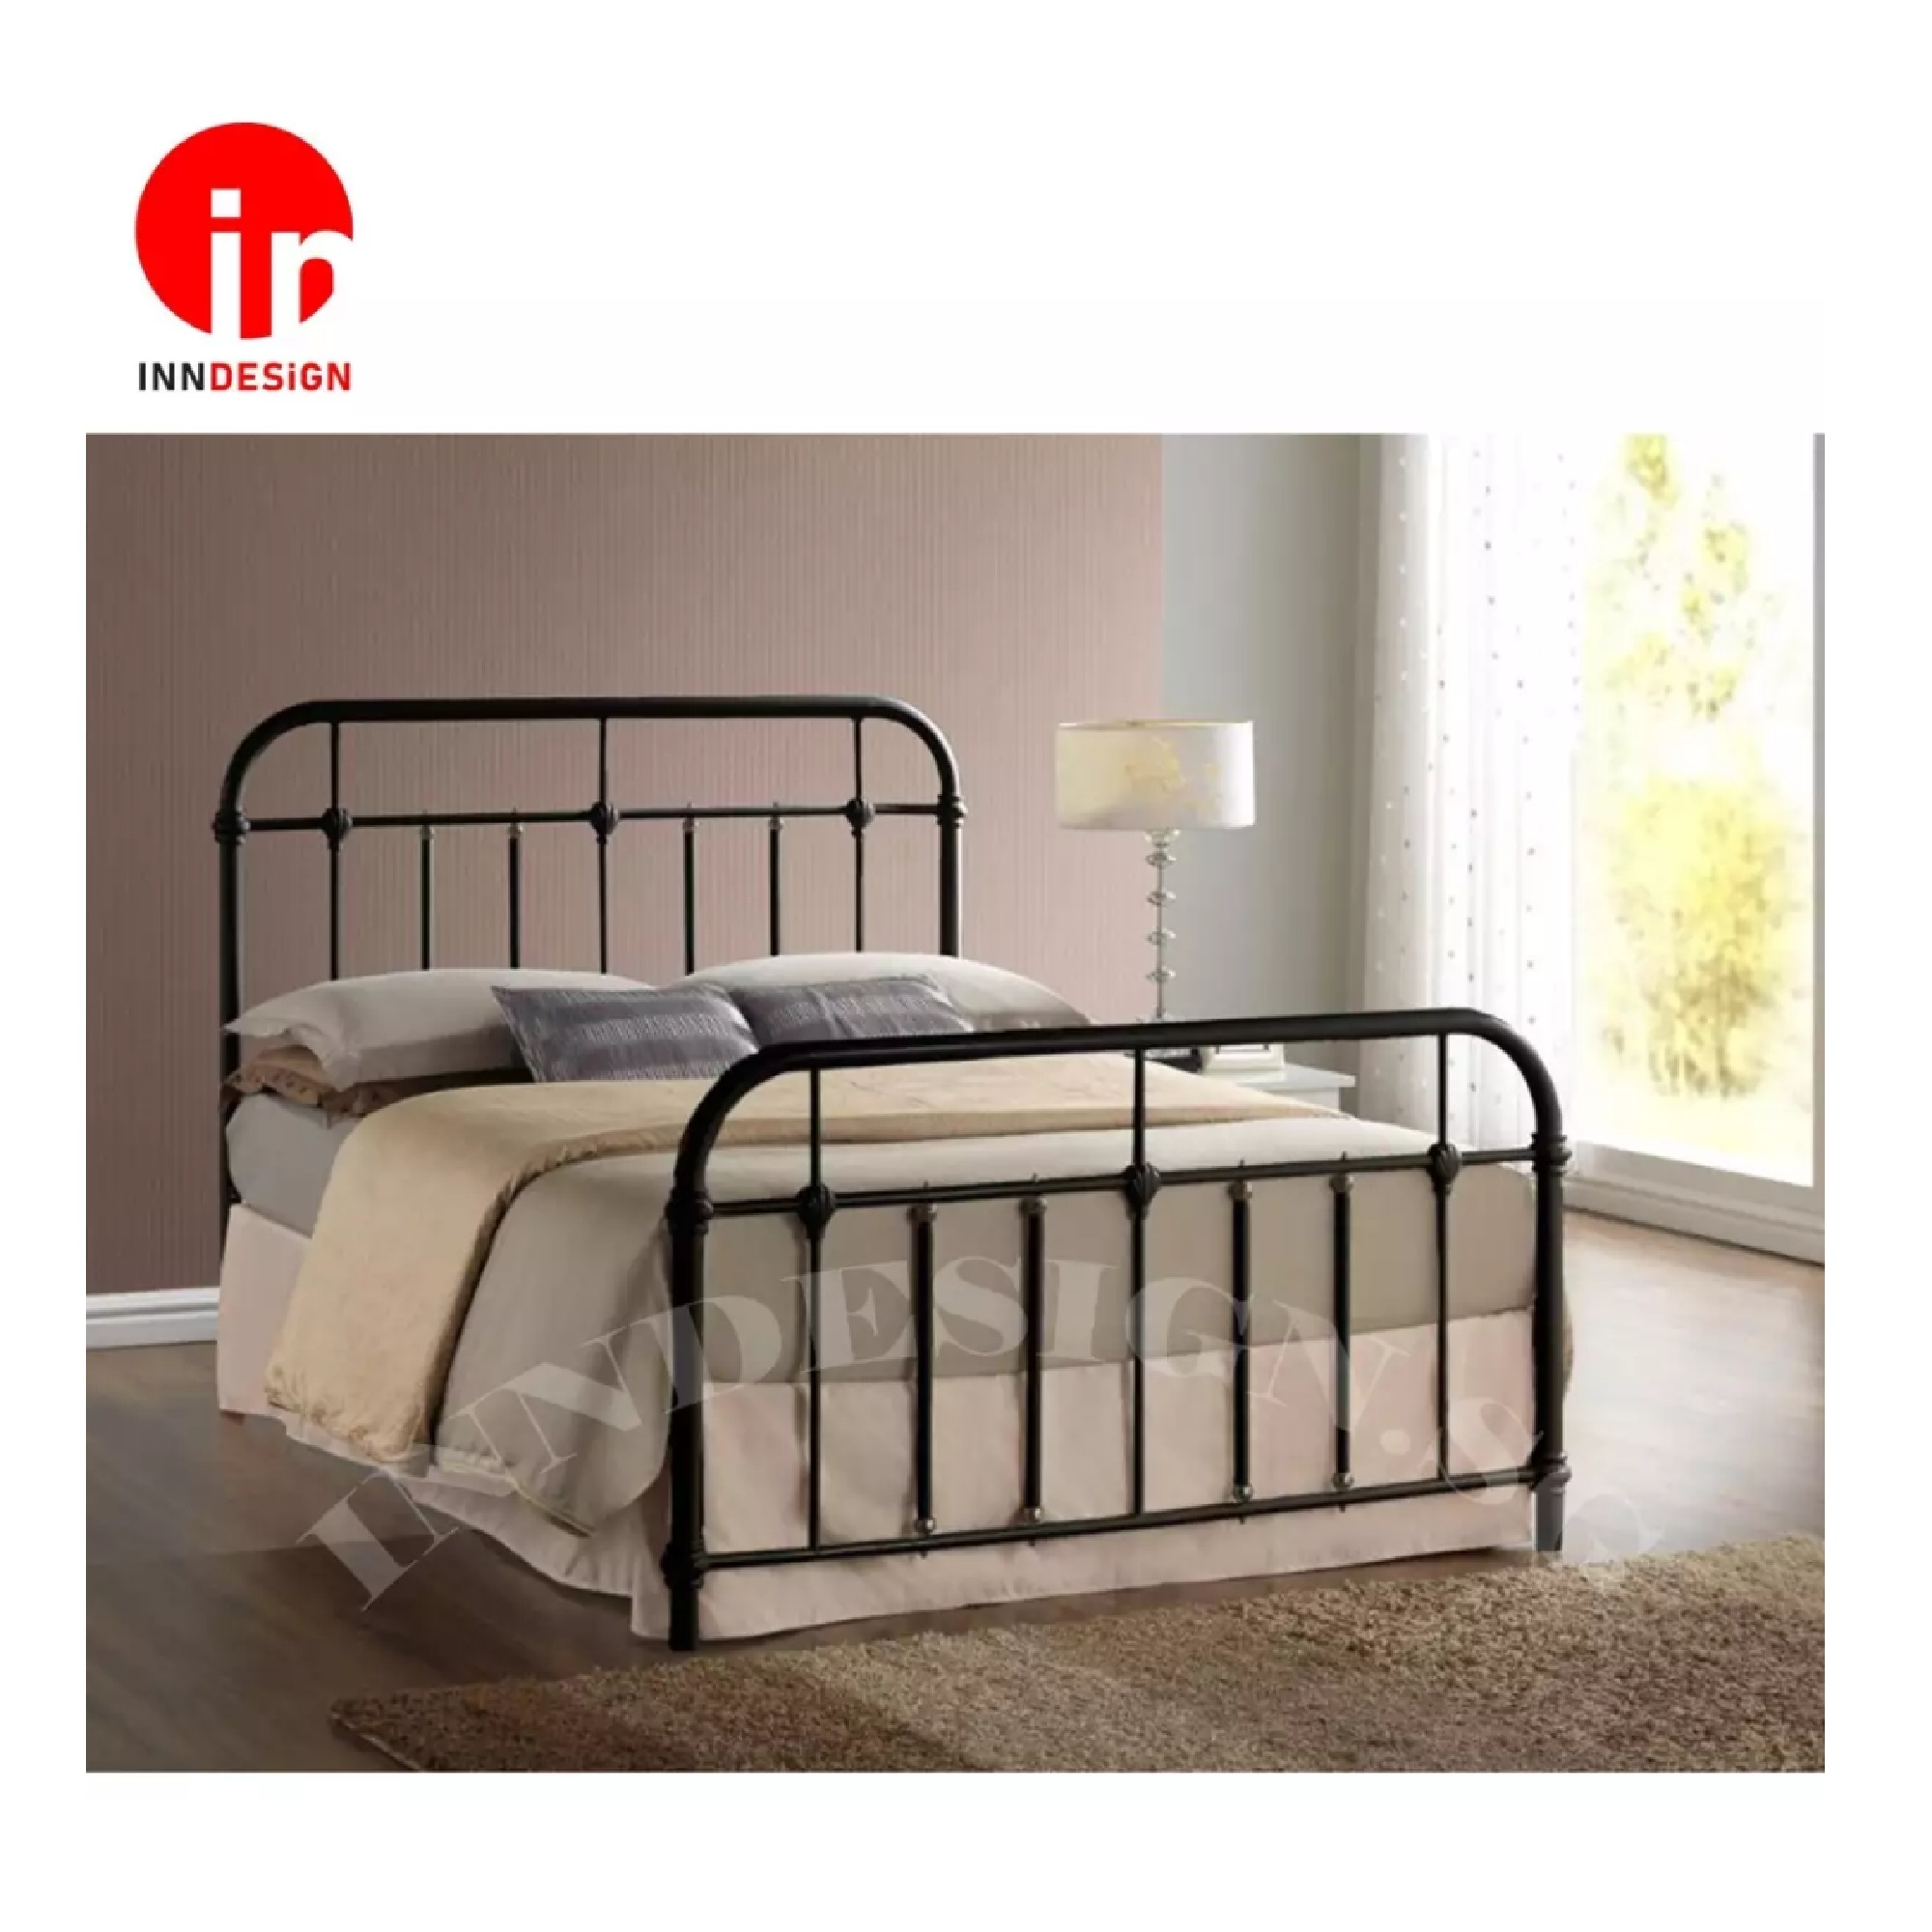 Ebie Queen Solid Metal Bed / Metal Bed Frame (Queen) (Black)